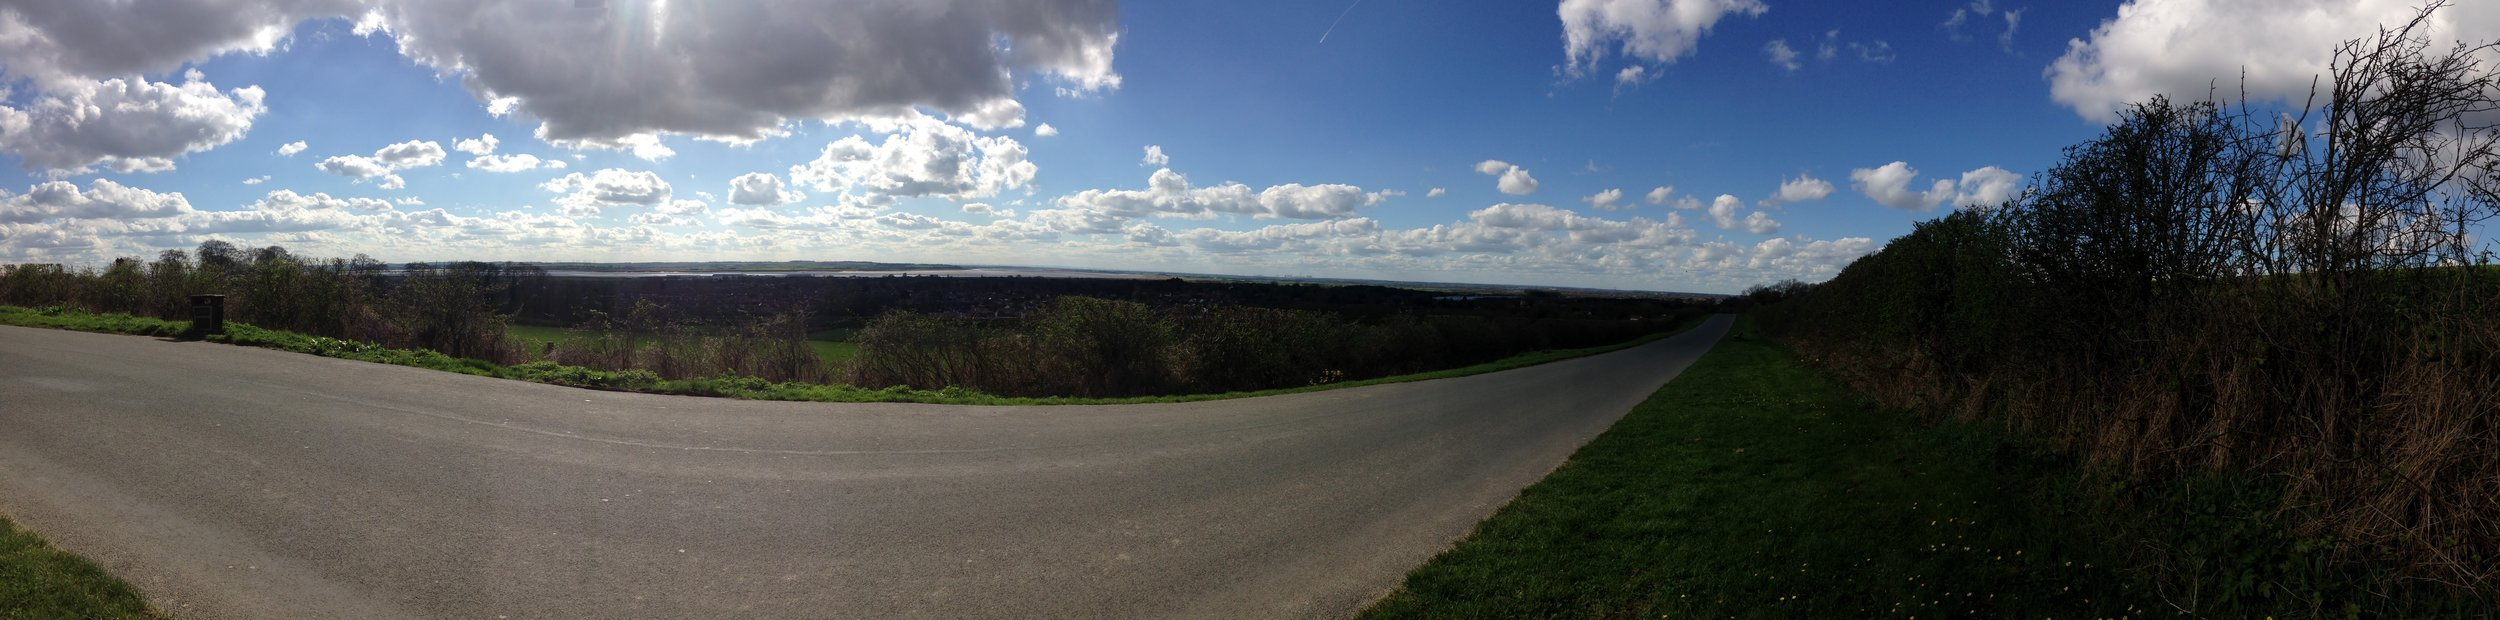 Look mum! I'm on top of the Wolds.